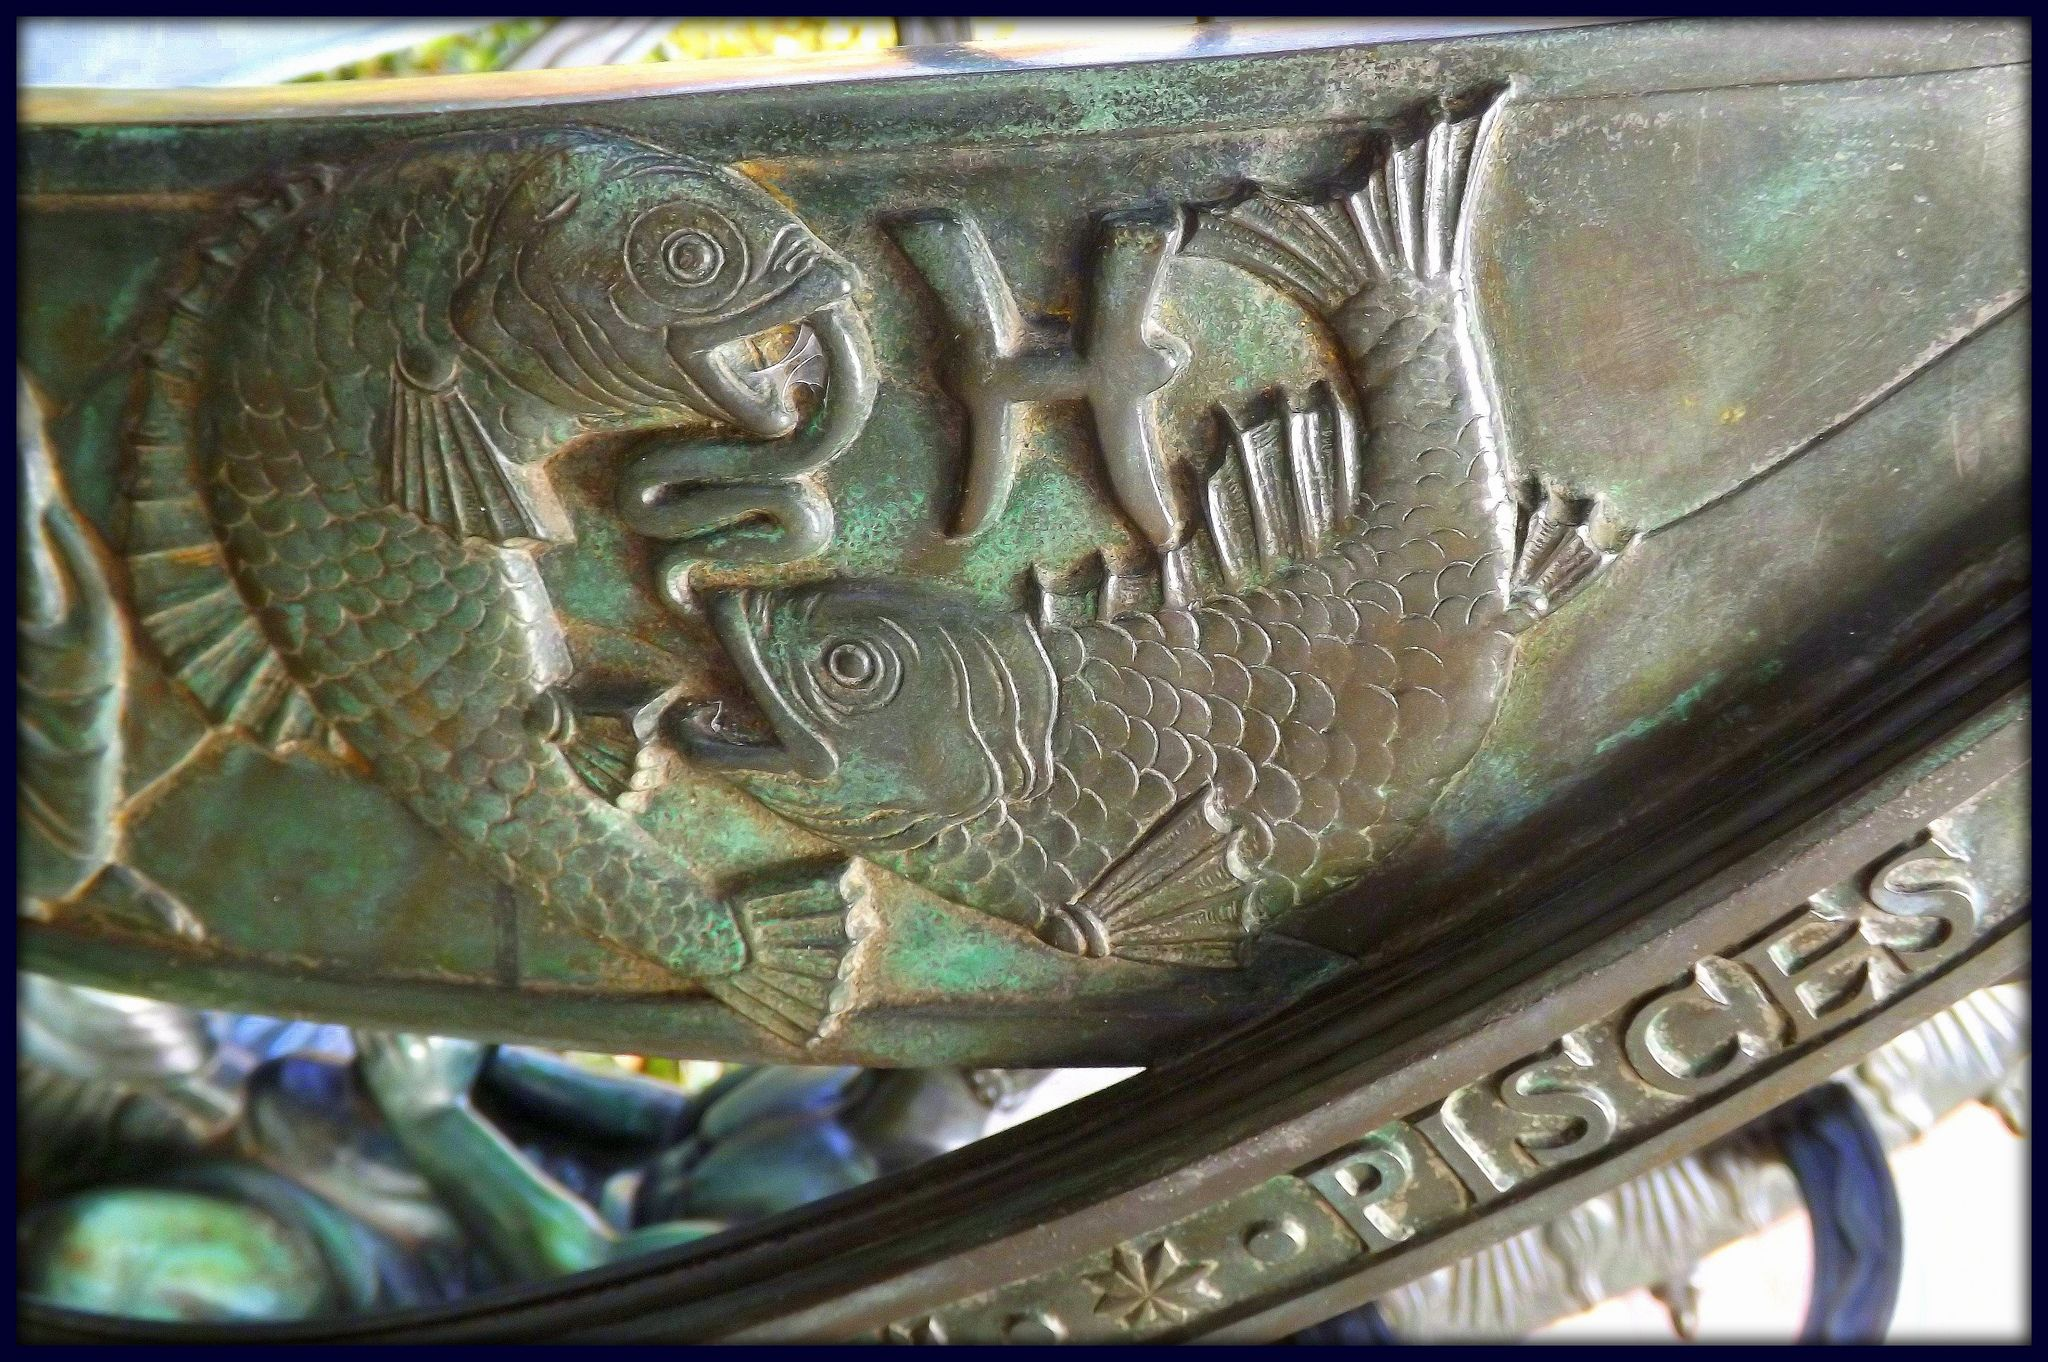 Pisces, Armillary Sphere, Cranbrook.  This sphere is by sculptor Paul Manship.